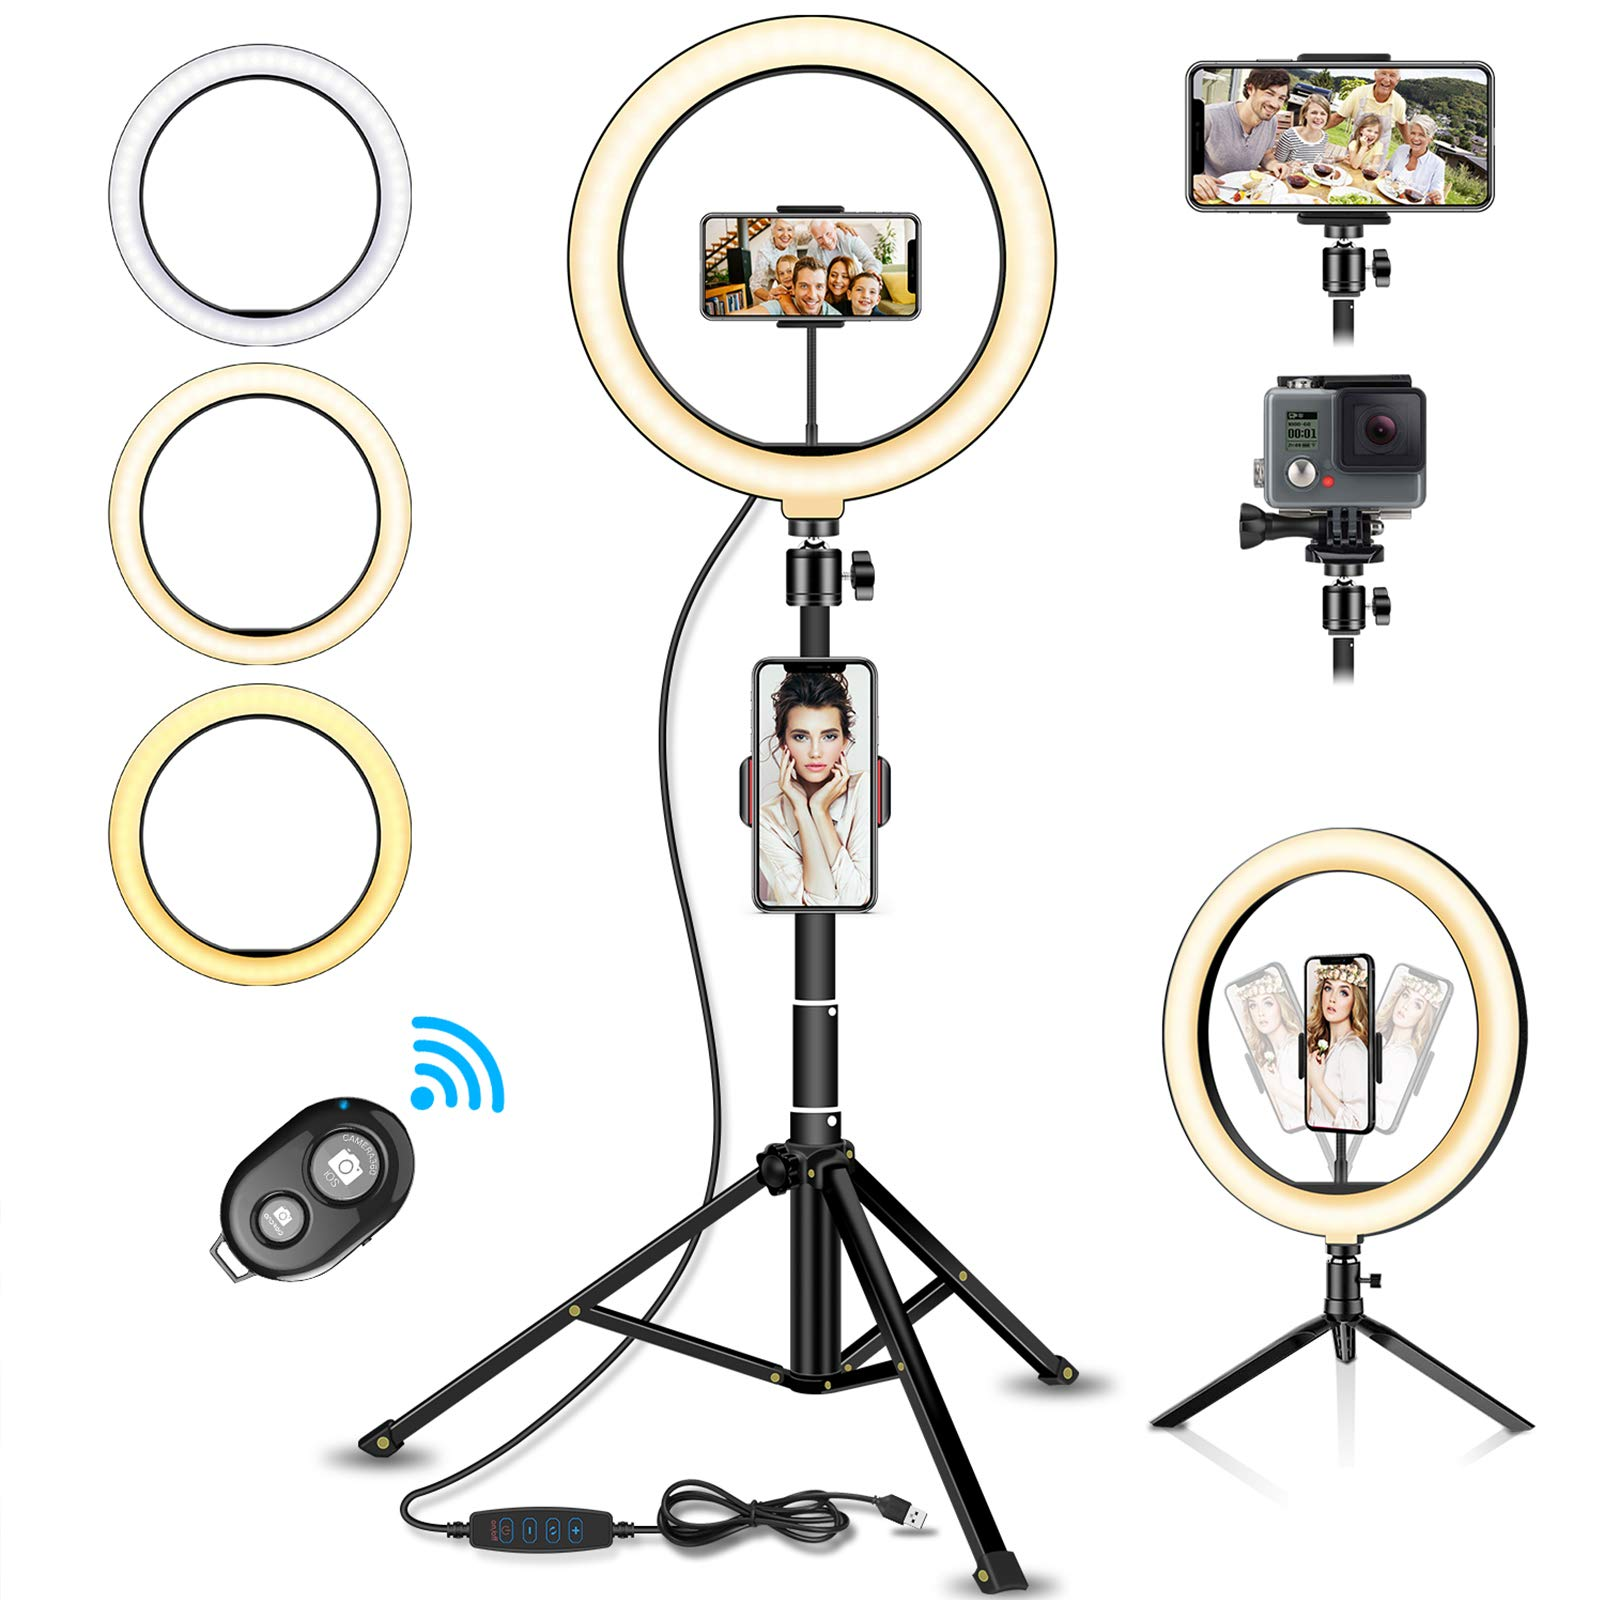 "SYOSIN Ring Light, 10.2"" LED Ring Light with Tripod Stand, 3 Color Modes and 10 Brightness for Streaming, Makeup, Selfie Photography"